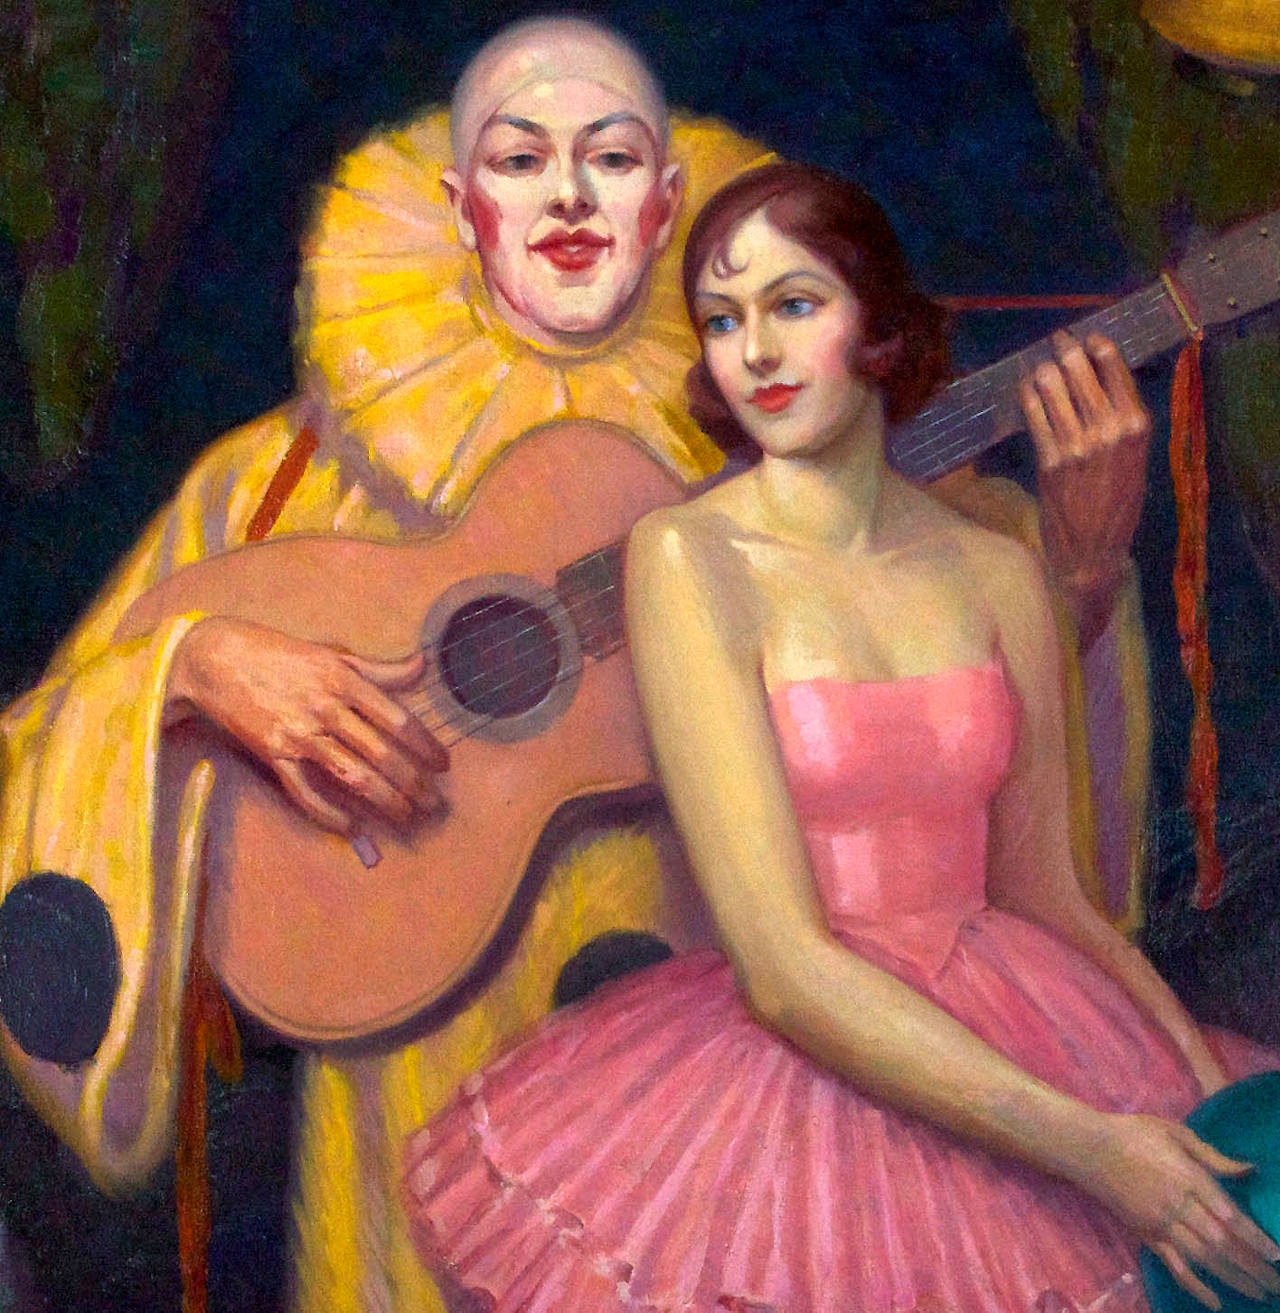 This is a suggestively subtle 1929 oil on canvas painting featuring a pierrot and ballerina in a quiet 'behind the curtain' circus moment. This large scale stylized art deco work is mournful and gay all at once, evoking all of the tensions of jazz